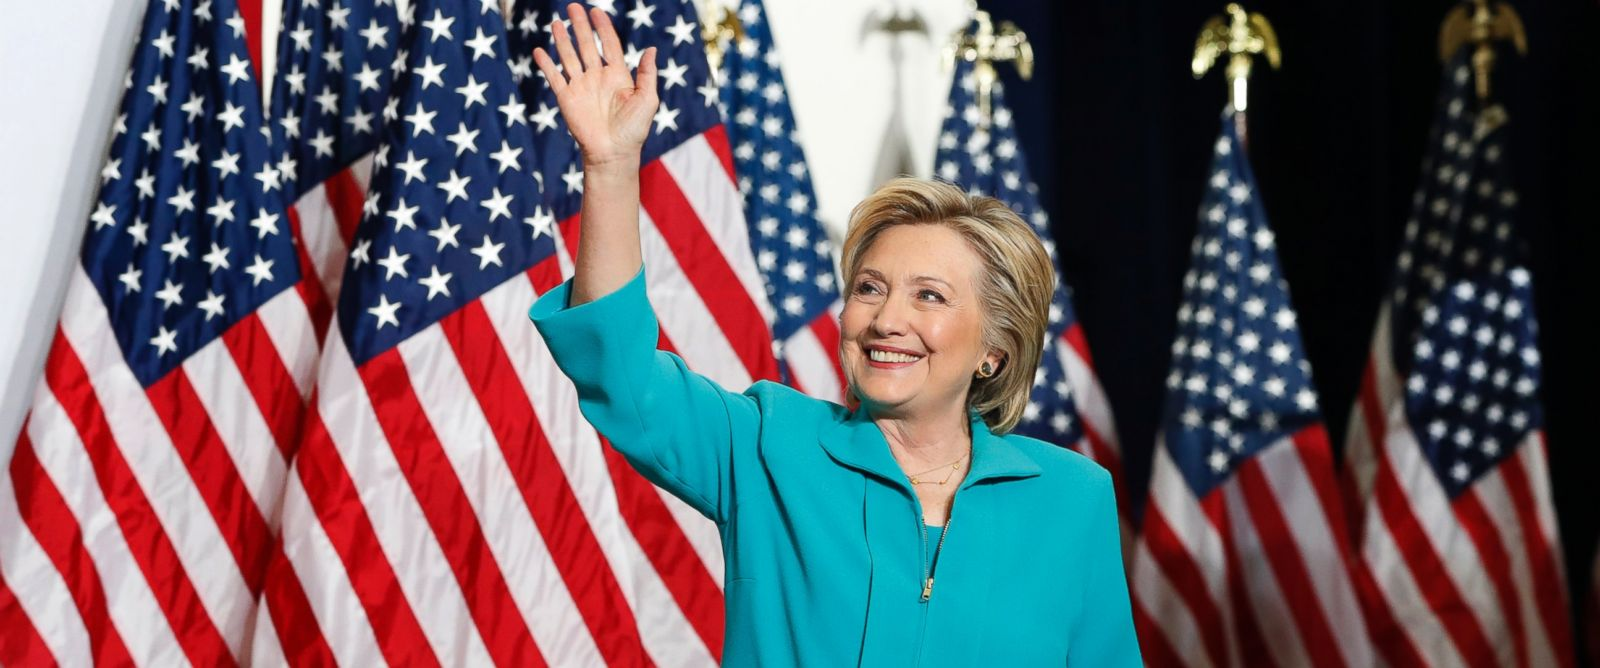 Hillary Clinton waving in front of multiple American flags while standing on stage wearing a teal blue suite